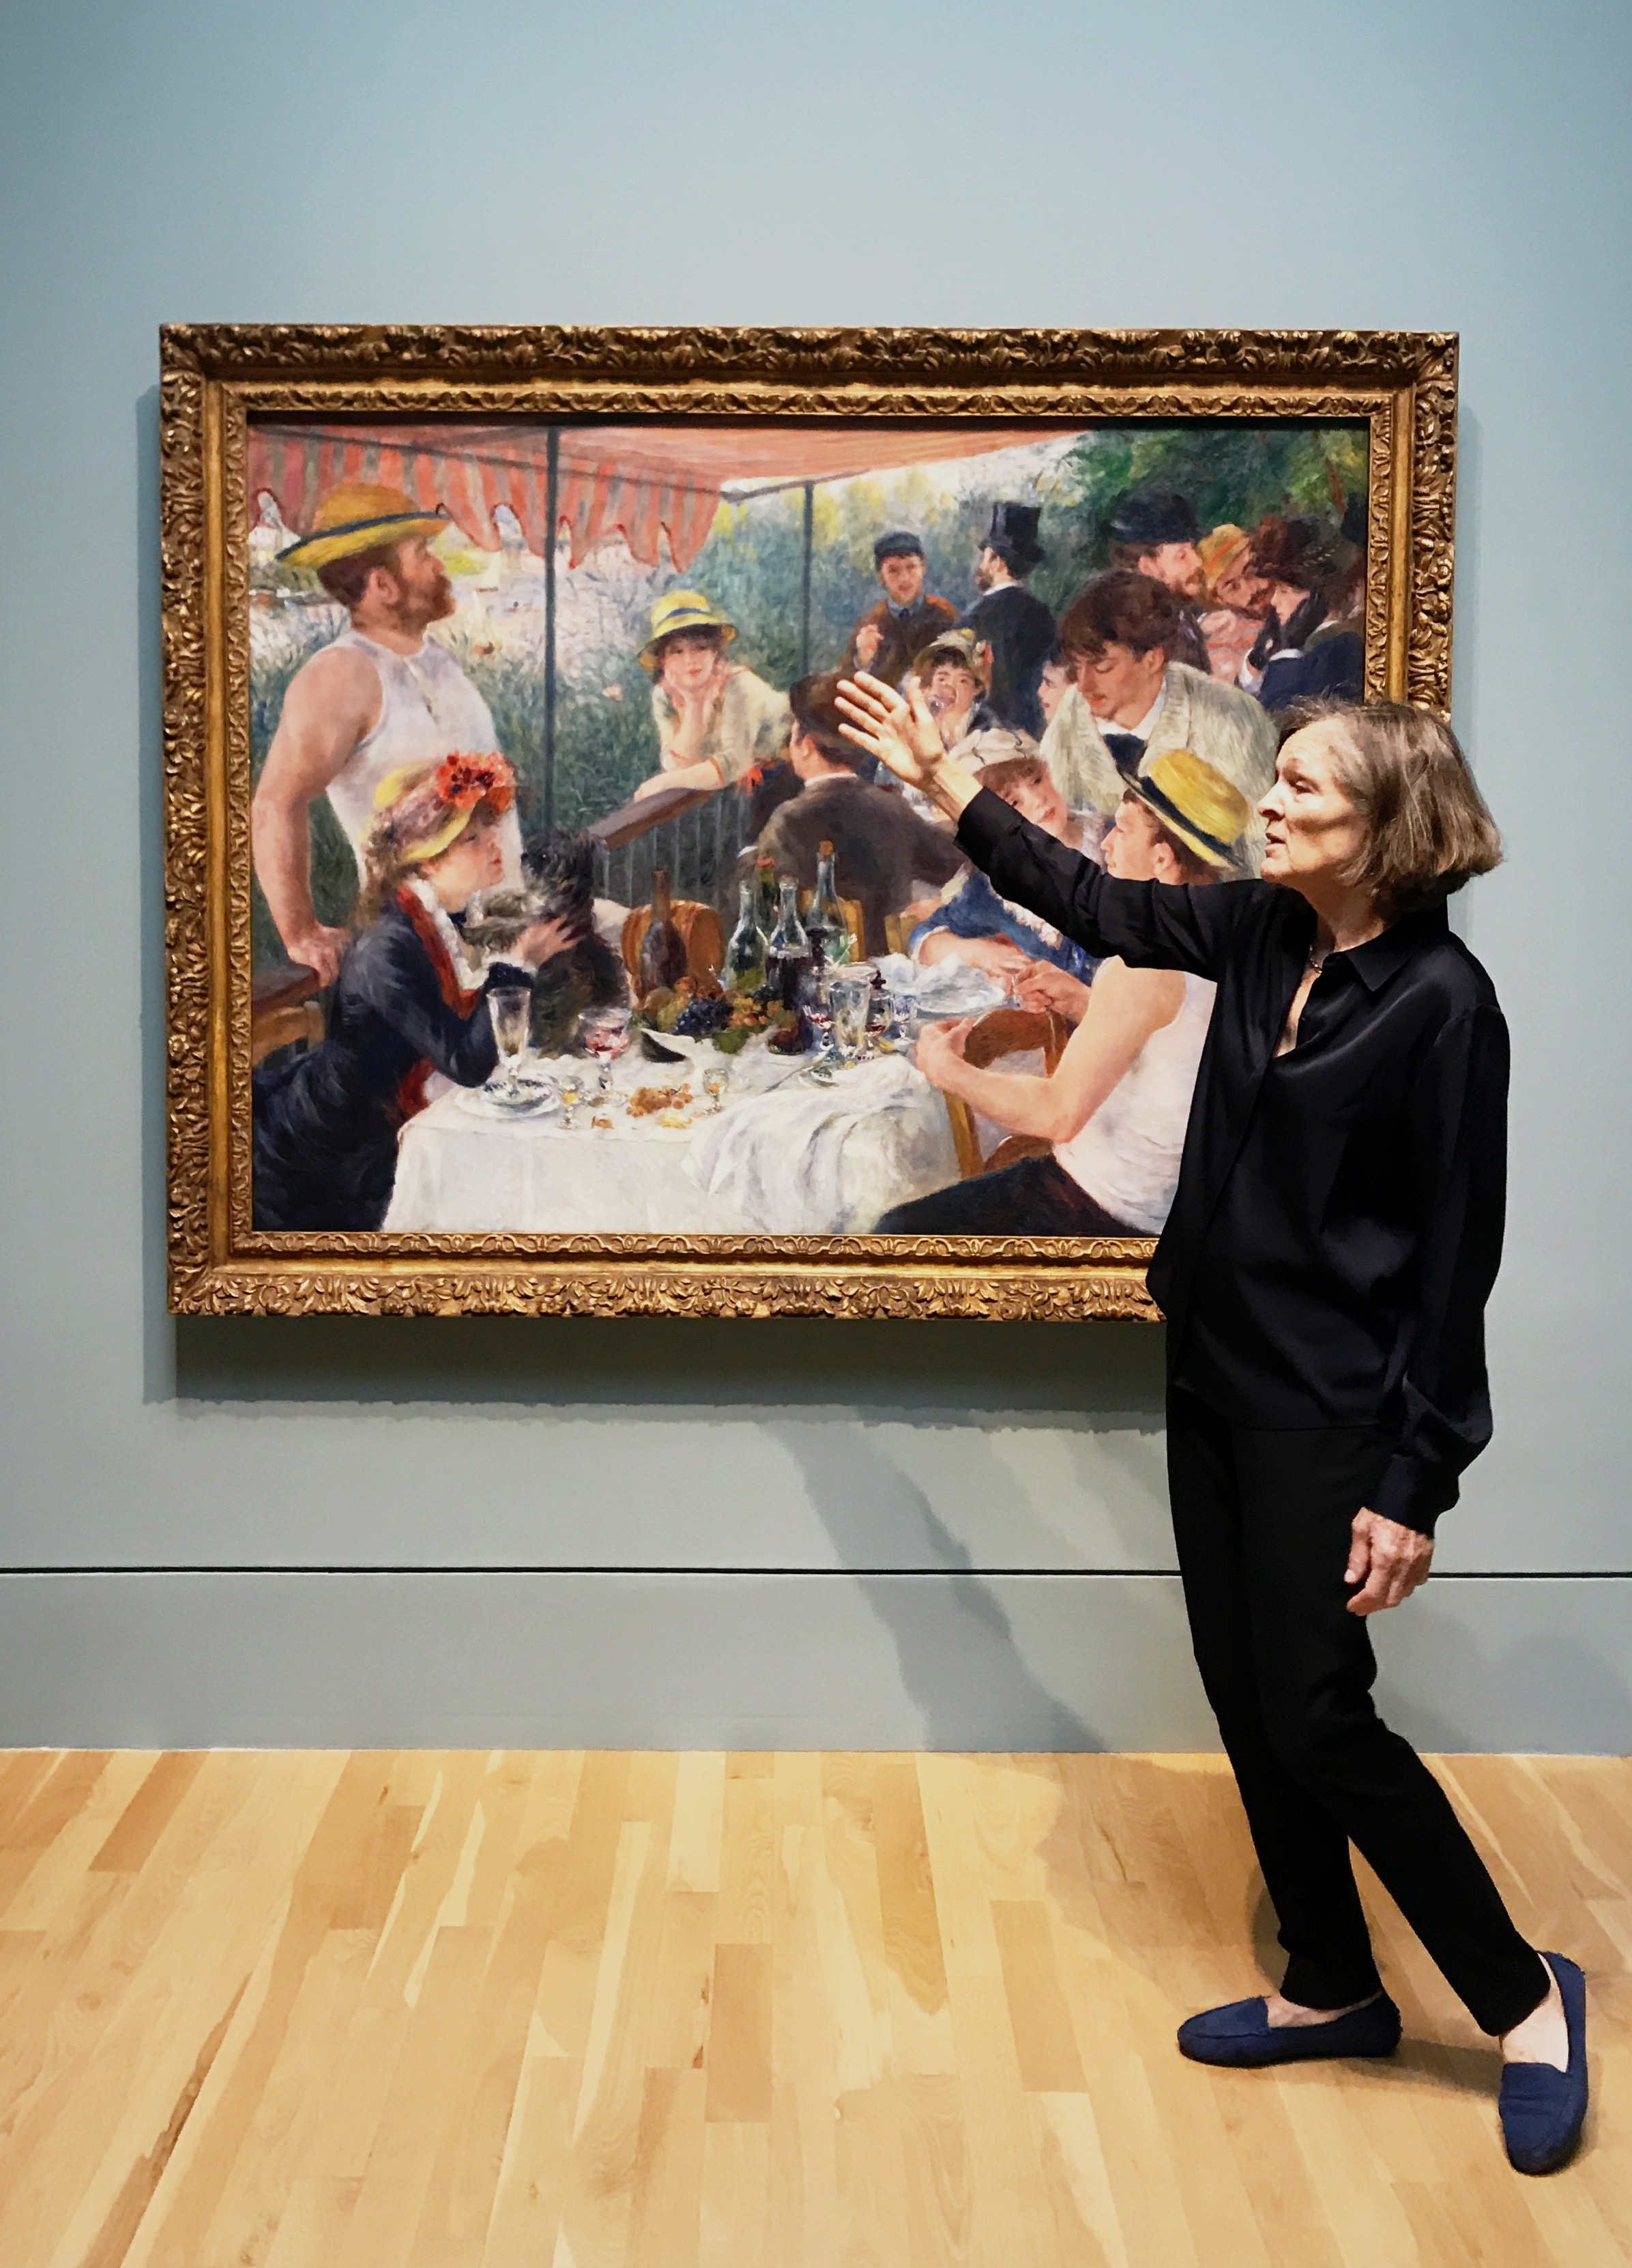 Chief Curator Emerita explains the social and technical history of Renoir's famous Luncheon of the Boating Party, the central piece of the exhibit